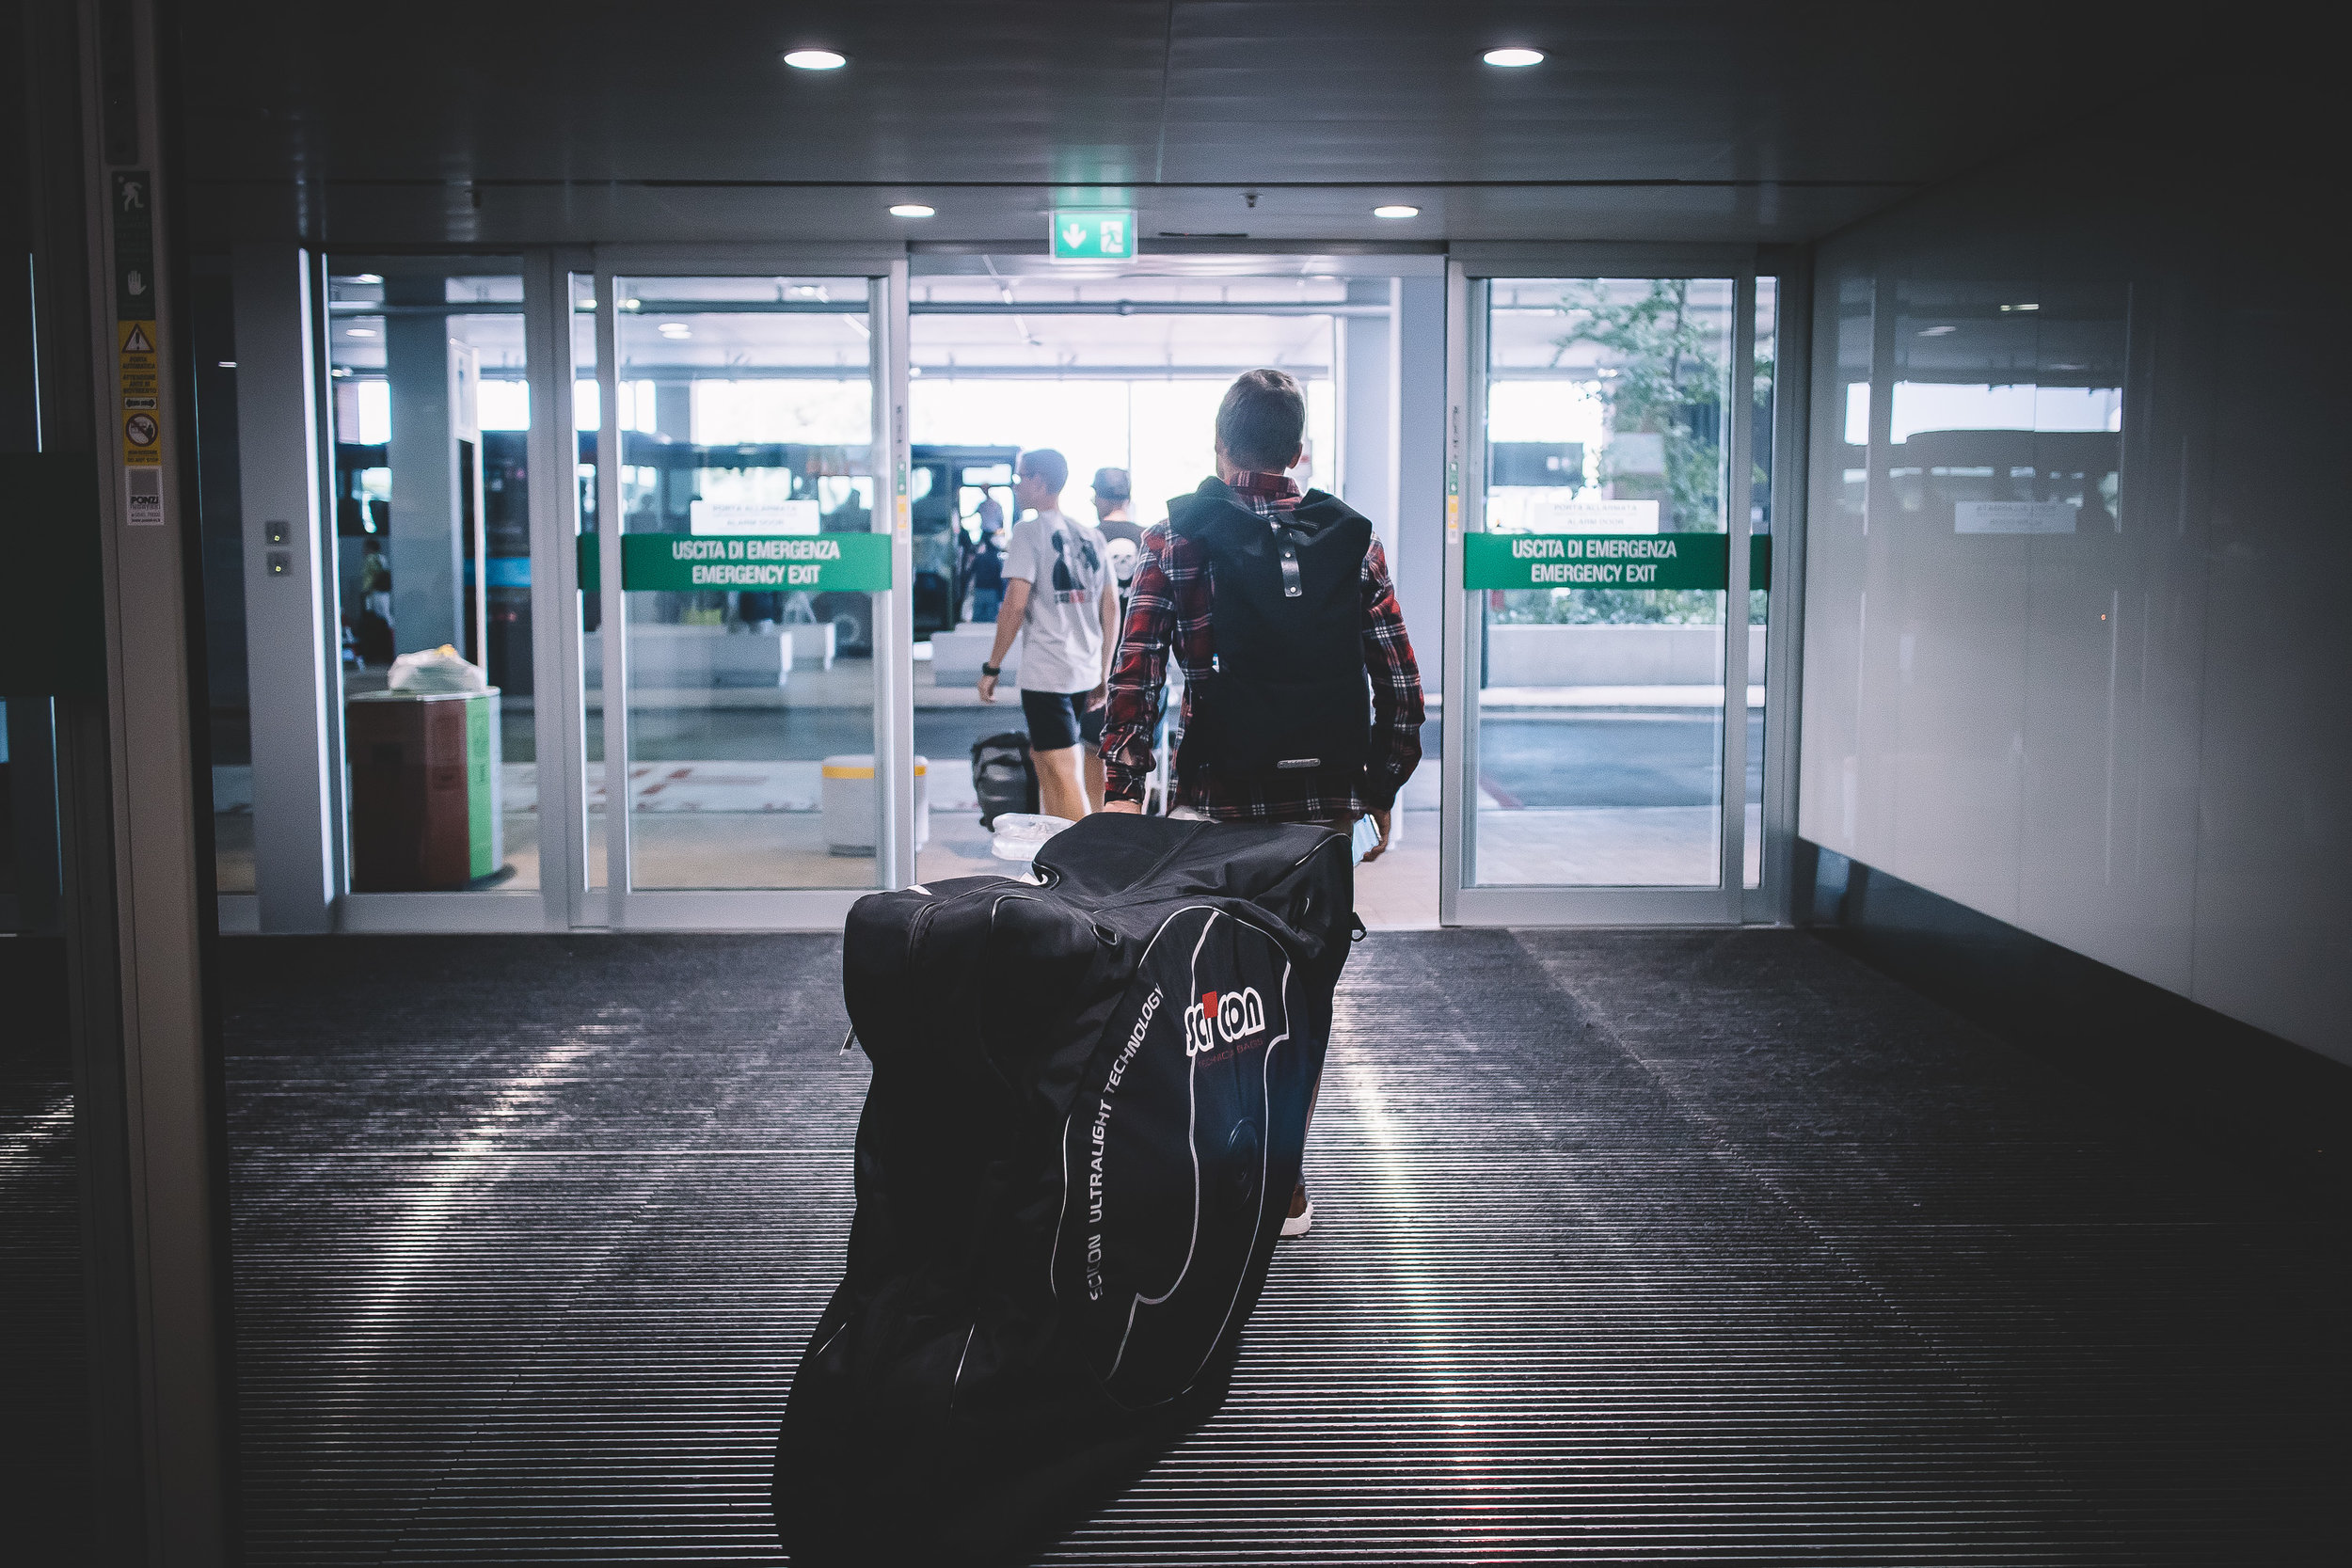 Airport Transfers - Coming from Barcelona or heading back home? Let us pick you up and deliver you to the airport or your accommodation with plenty of room for your bike and luggage.Price per pick up - Barcelona €190Girona €40